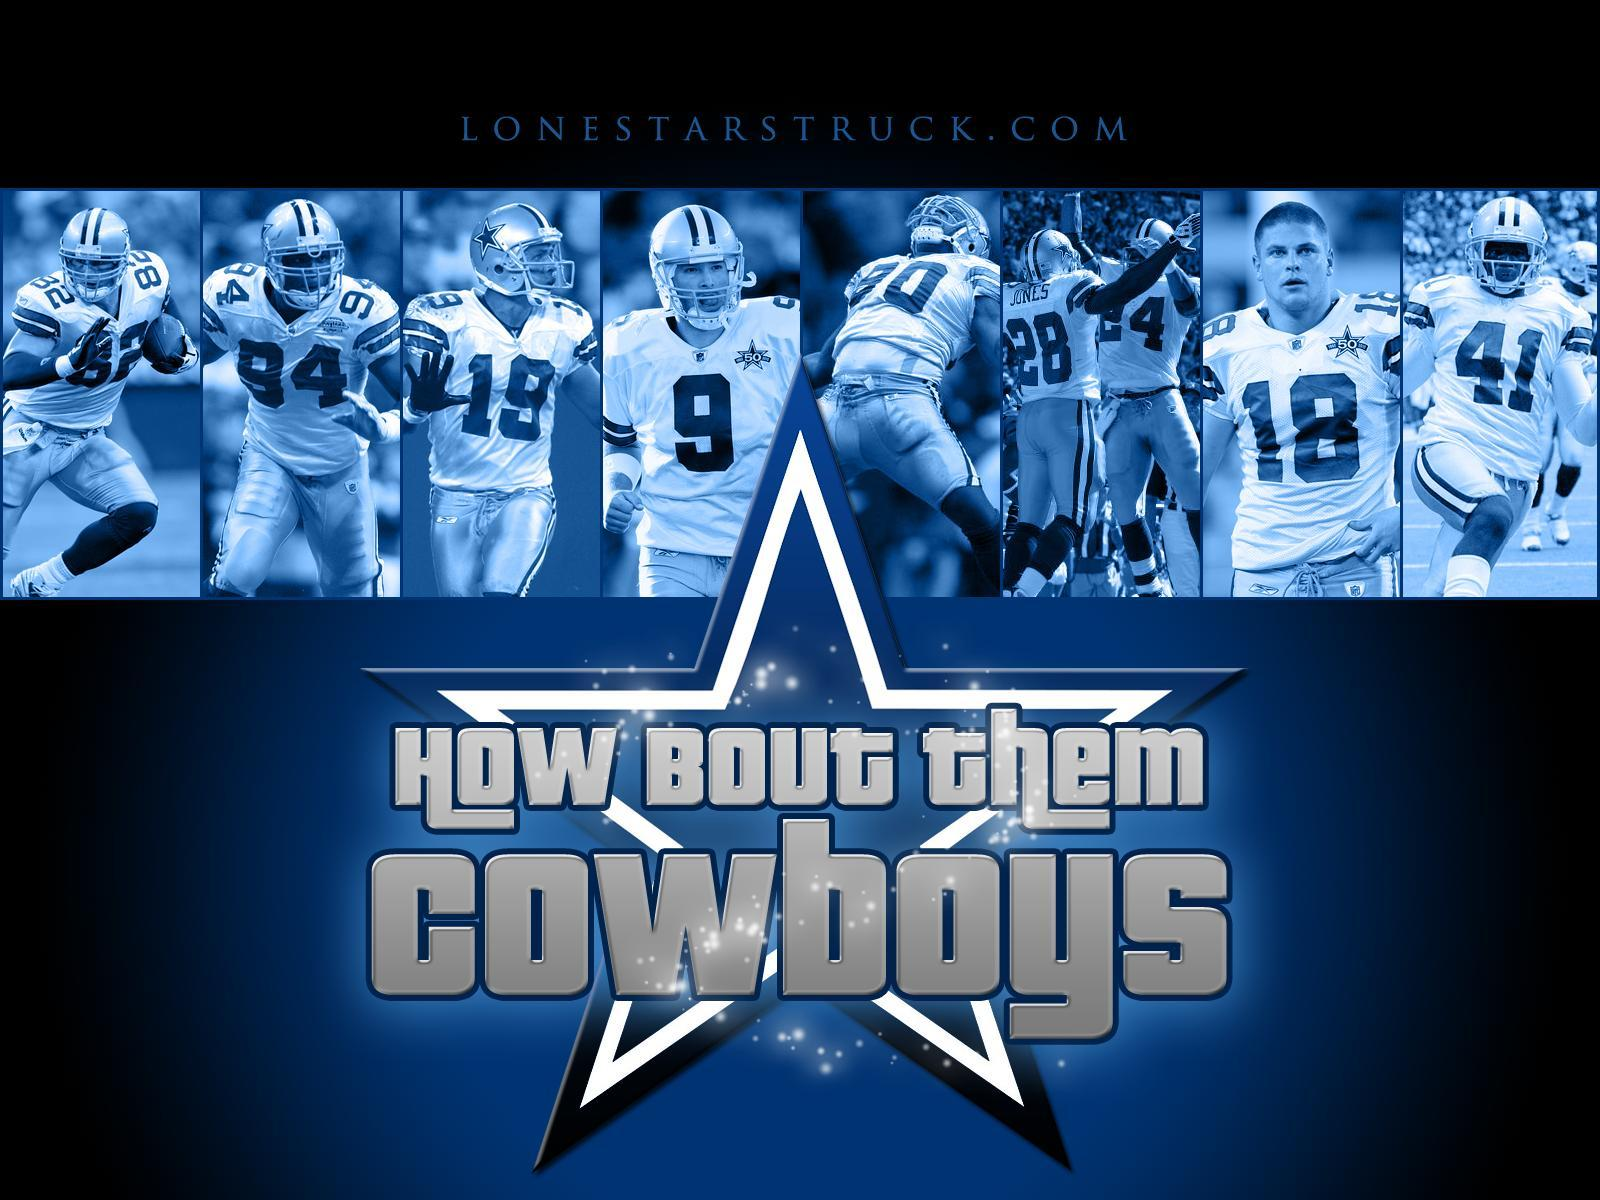 Dallas cowboys image wallpapers wallpaper cave dallas cowboys wallpapers dallas cowboys background page 2 download voltagebd Images